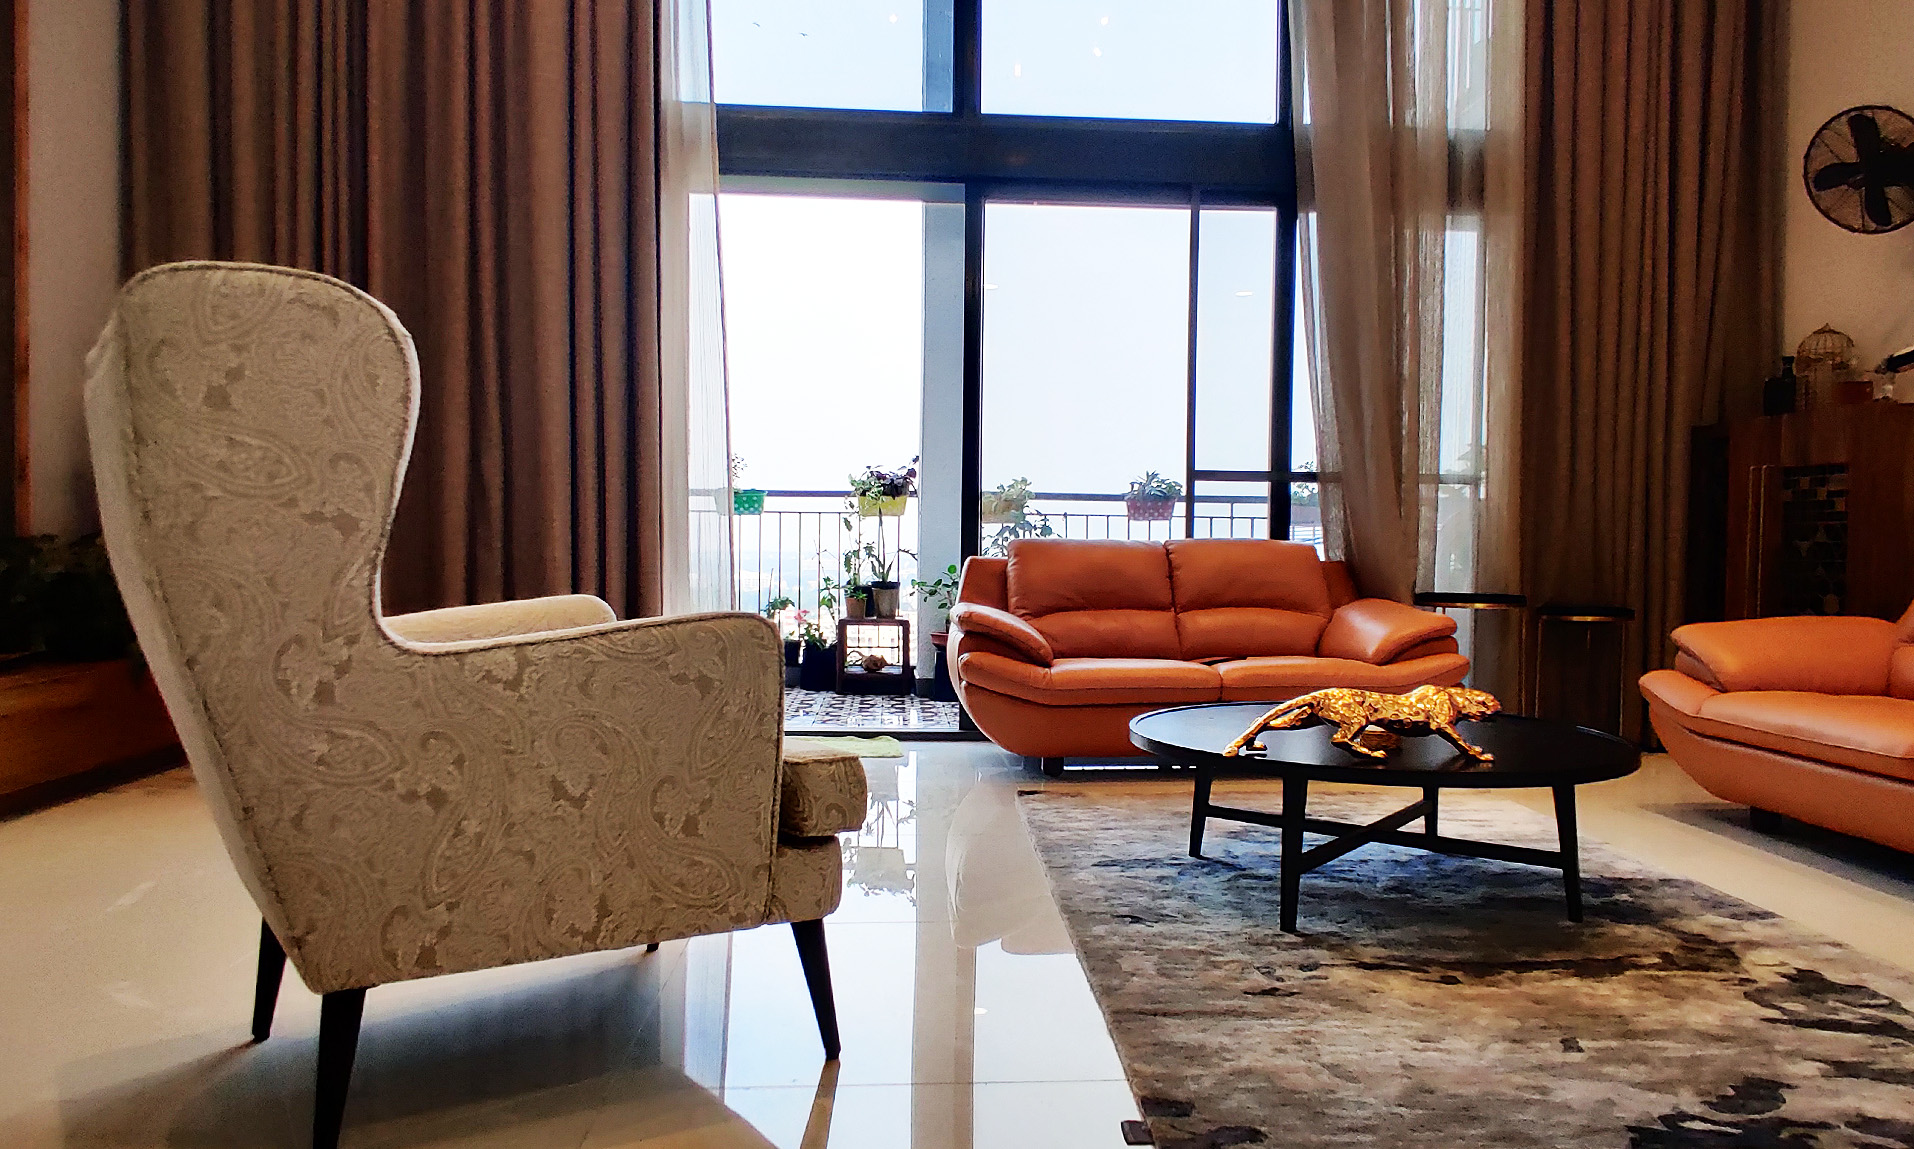 Double height living room in a penthouse apartment in Bangalore , with a highbacked chair as the center of the room